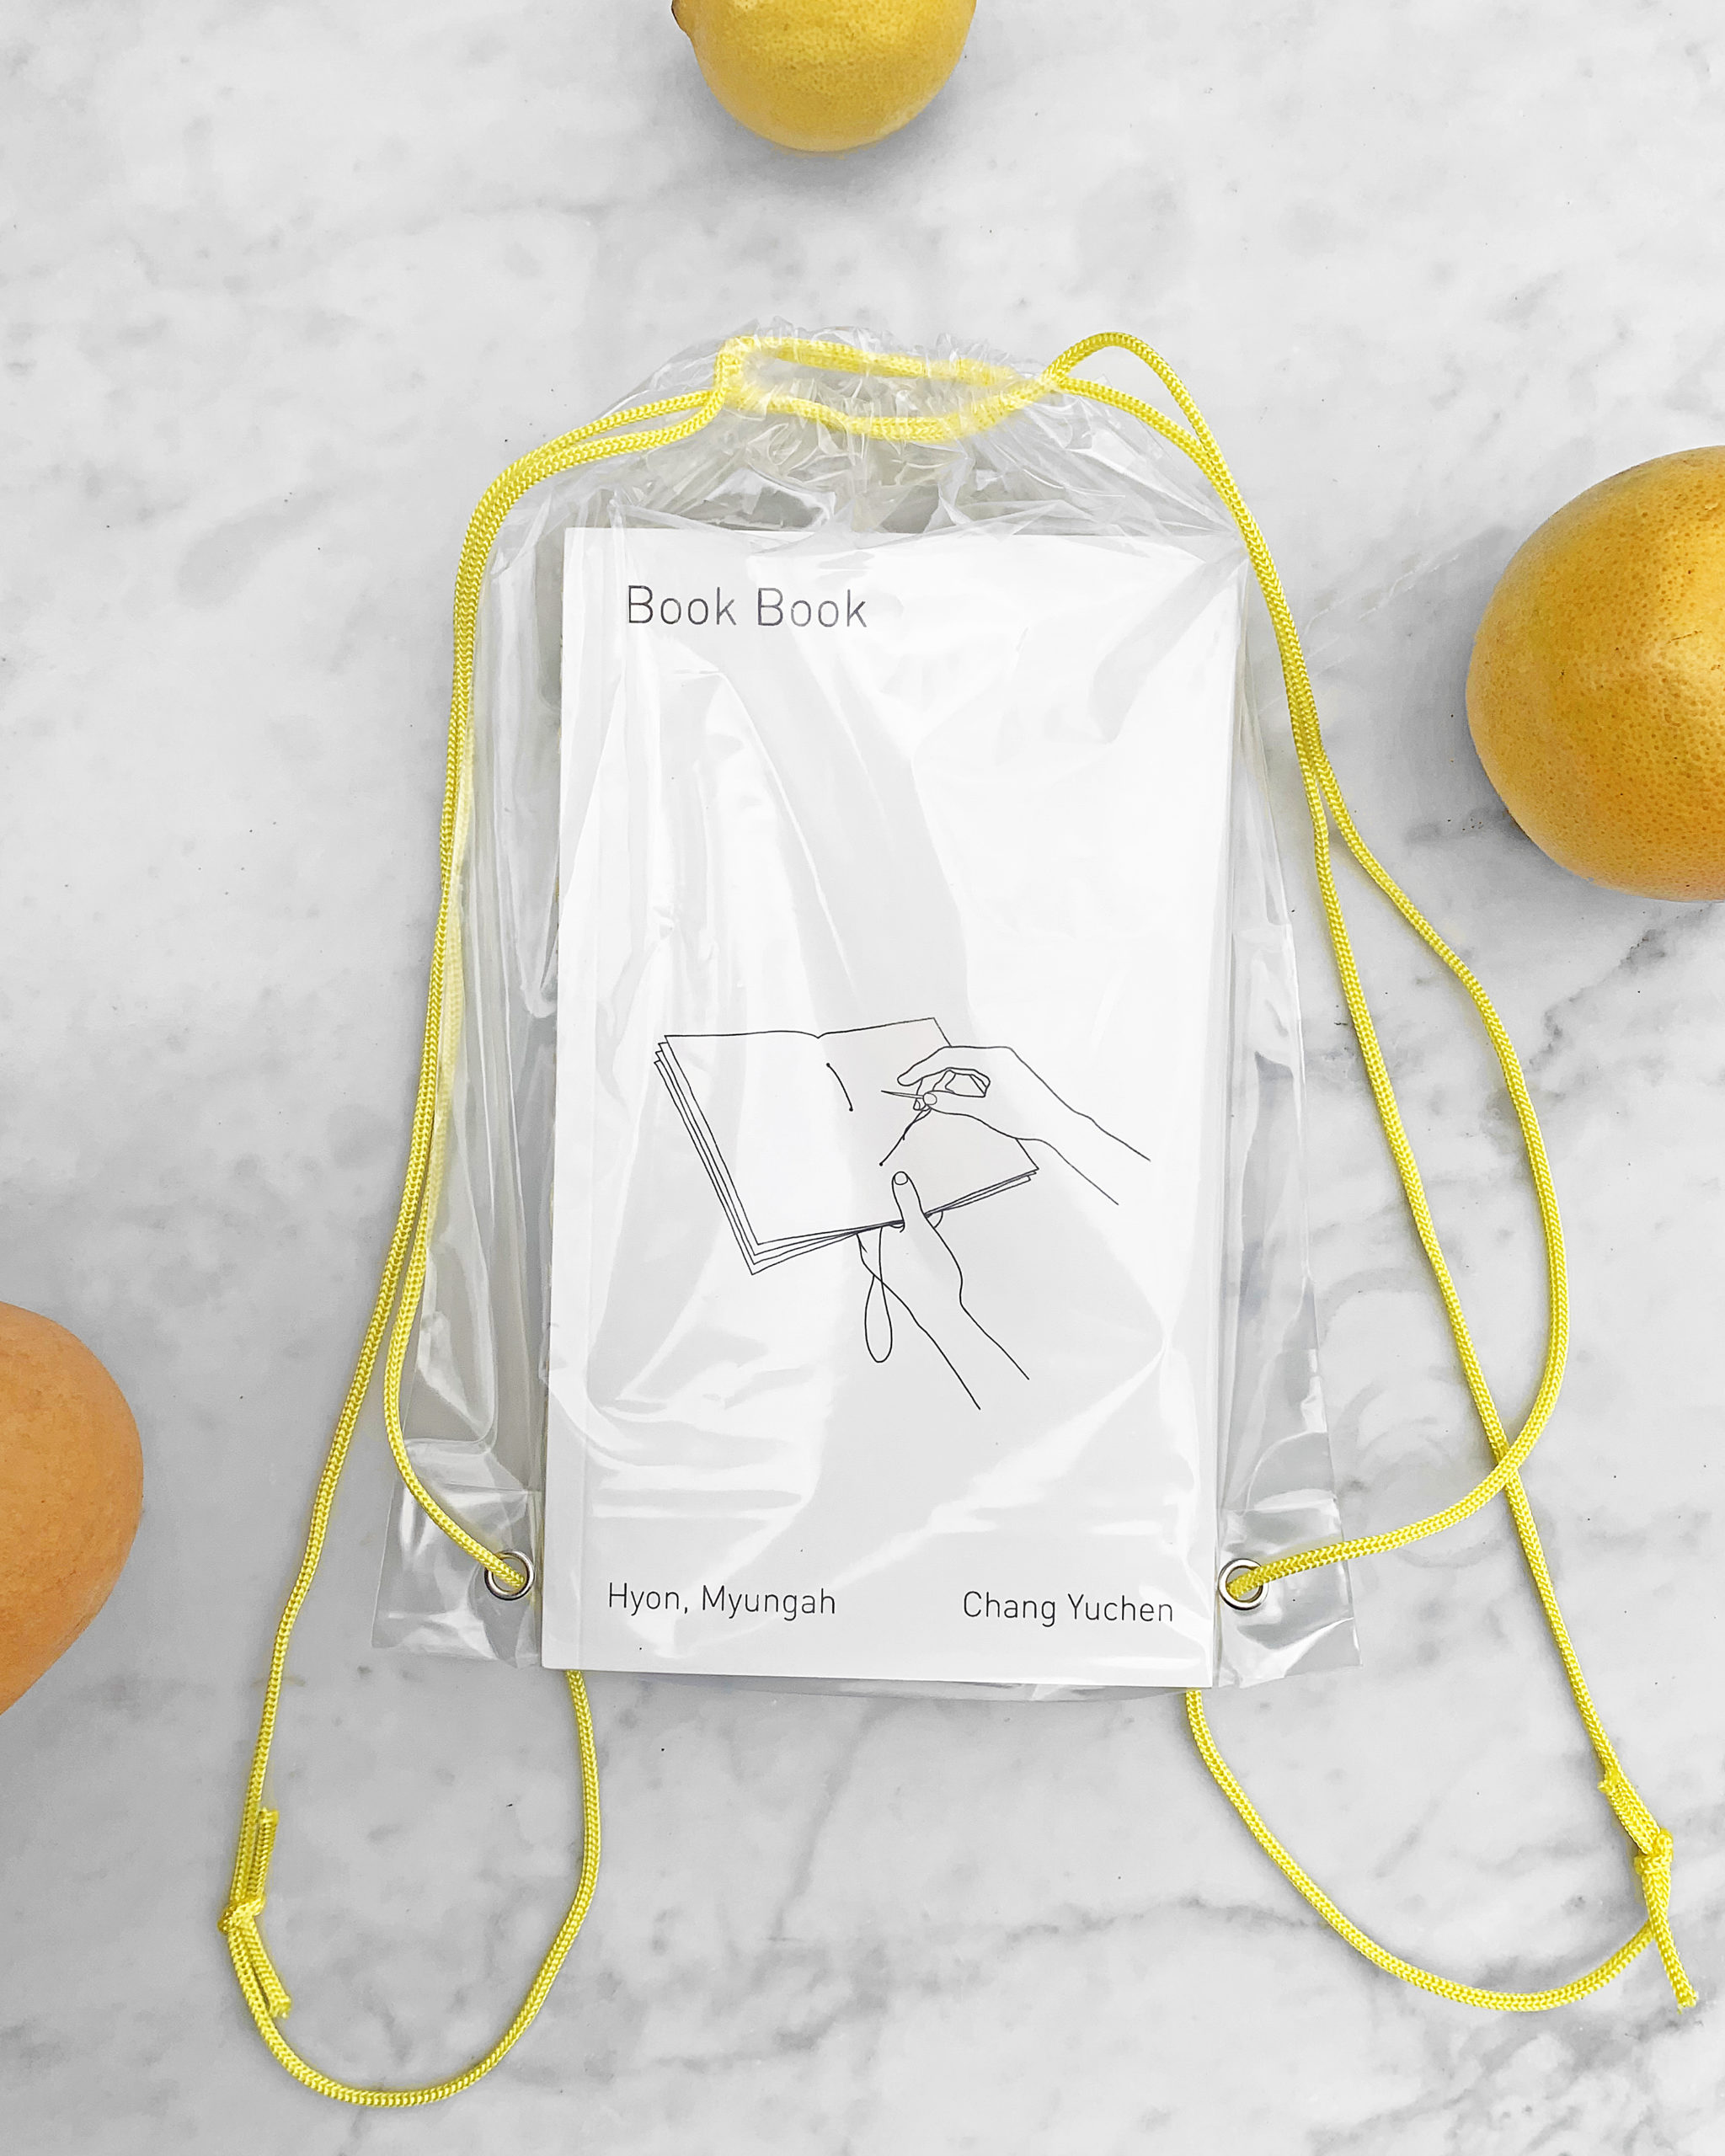 book book in a clear plastic knapsack will yellow chords